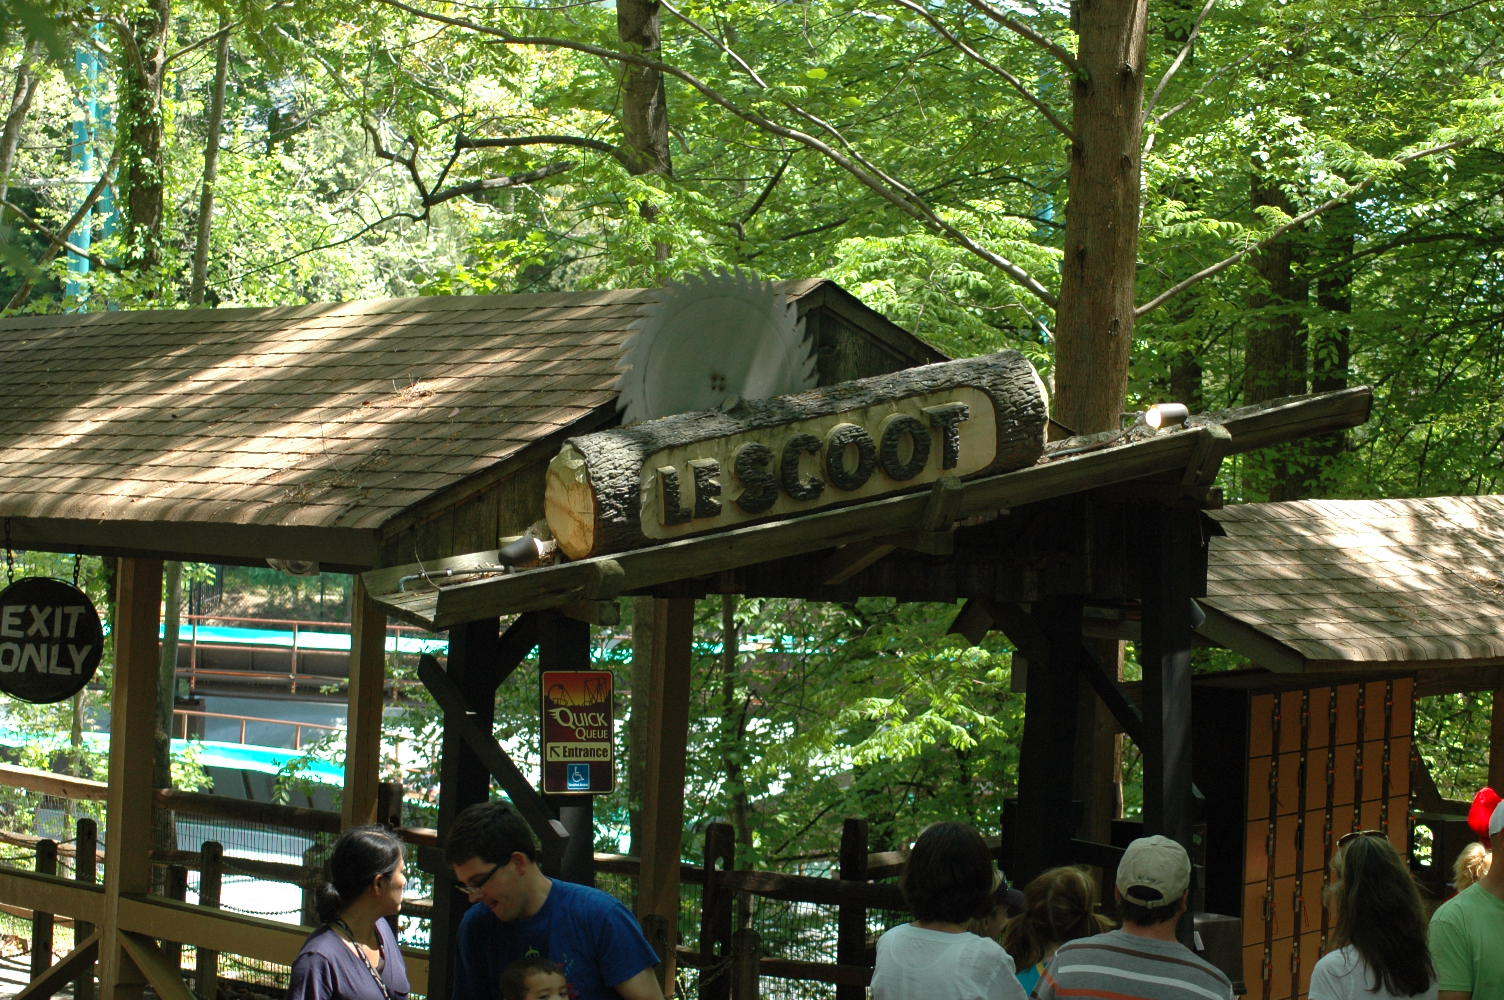 Beyond The Ride Le Scoot Log Flume Attraction Chasers